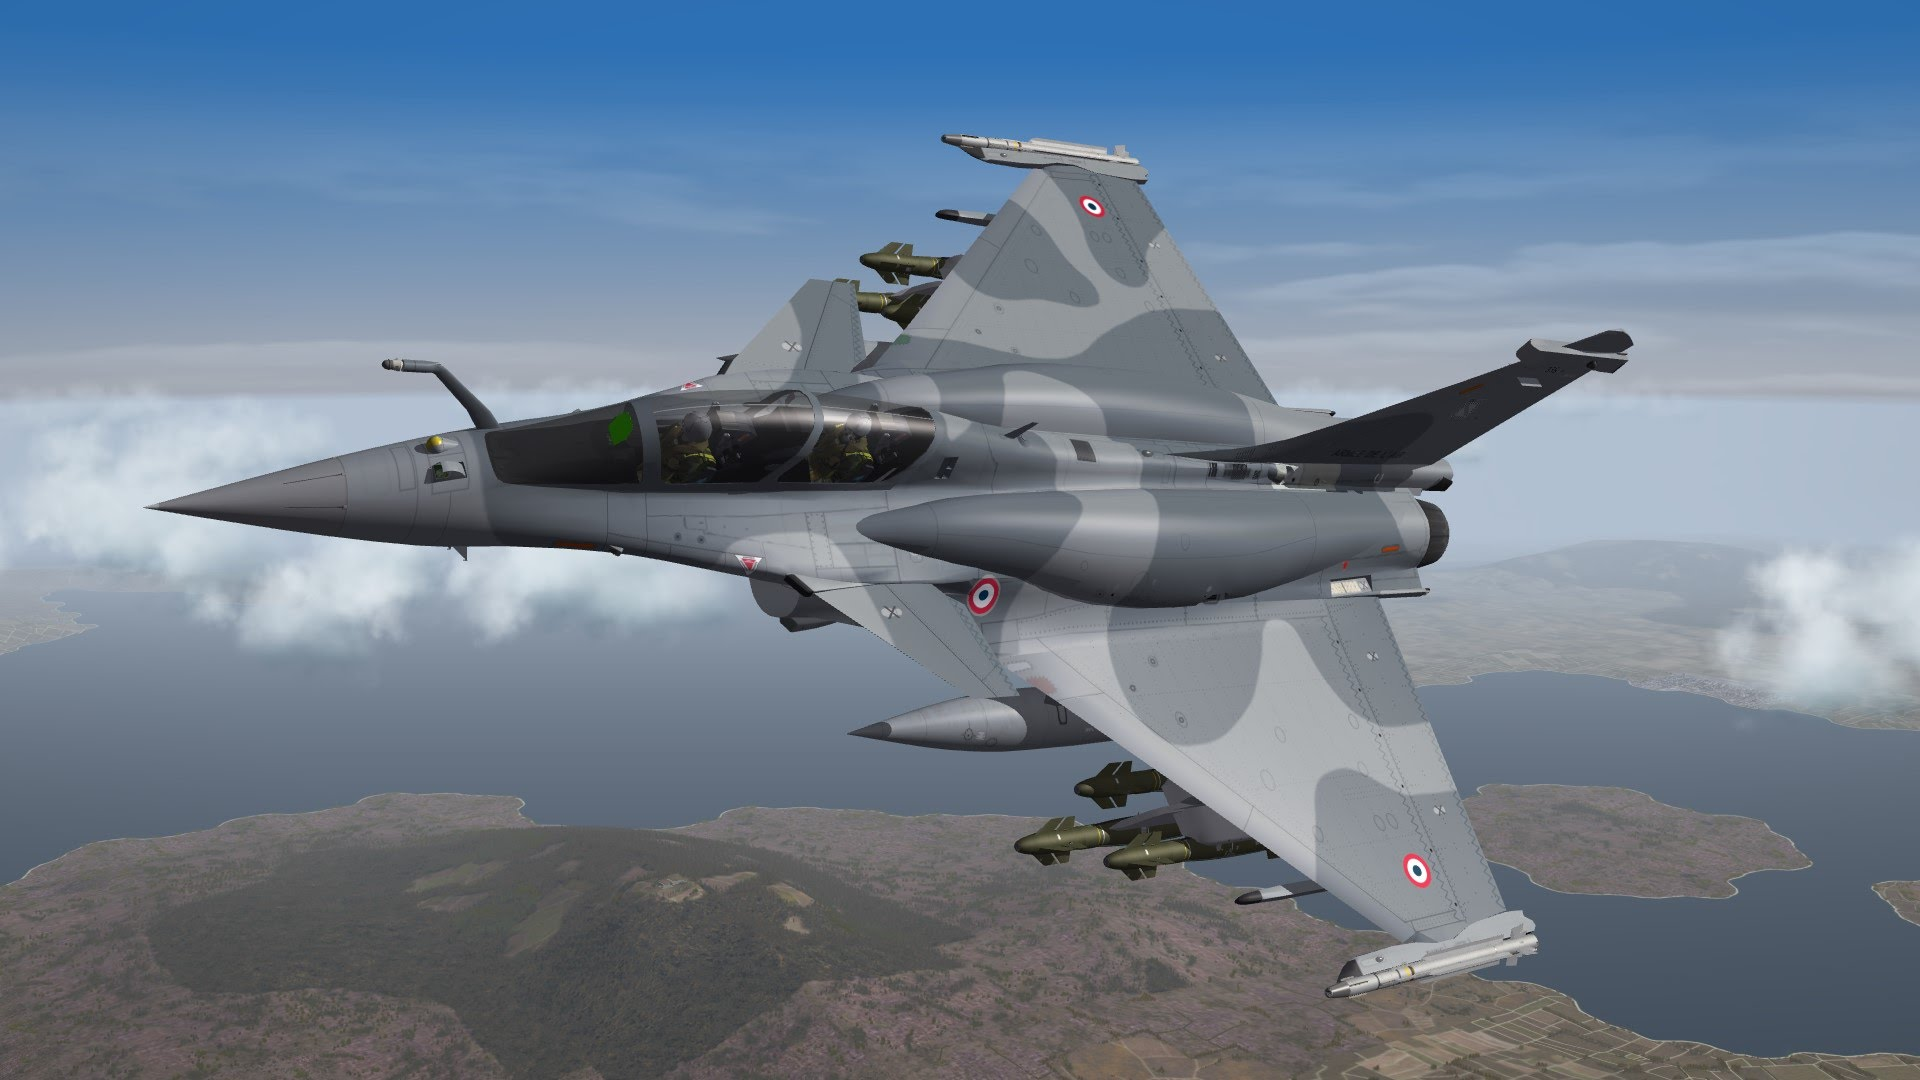 Fsx Wallpaper Hd Top 10 Incredibly Advanced Fighter Jets In 2017 Aviation